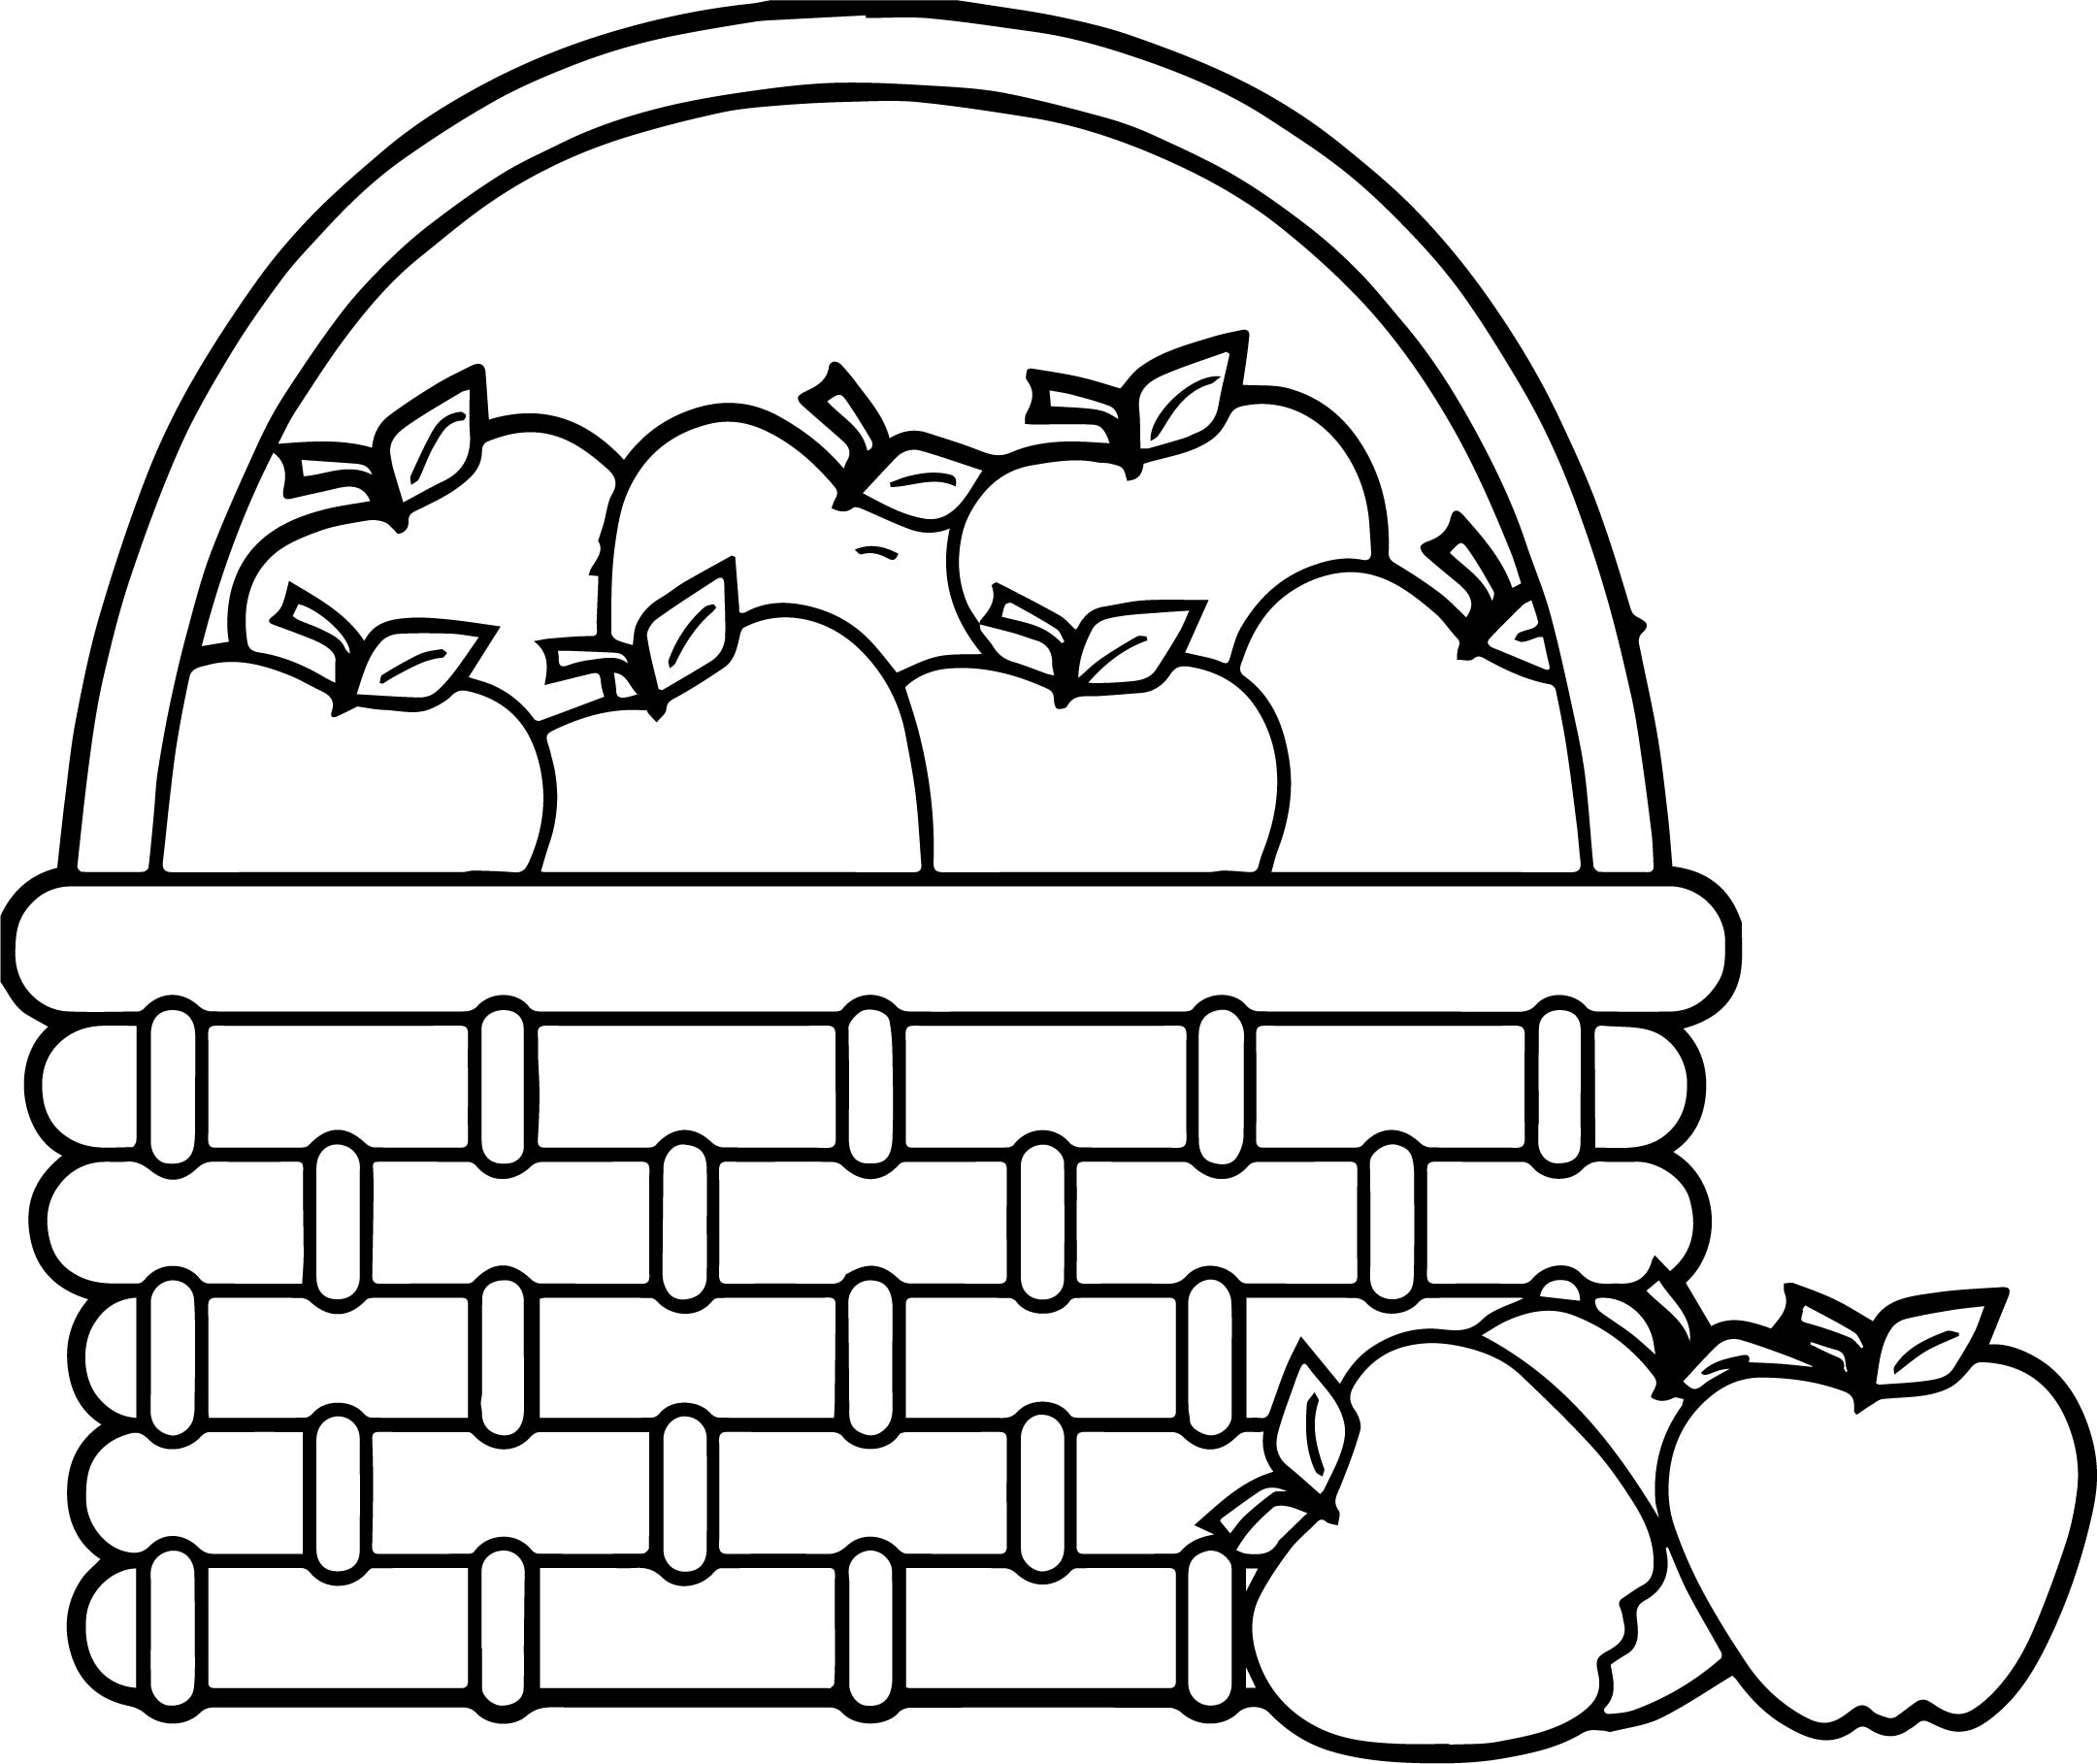 picnic basket apple basket basket apples coloring page - Apples Coloring Pages